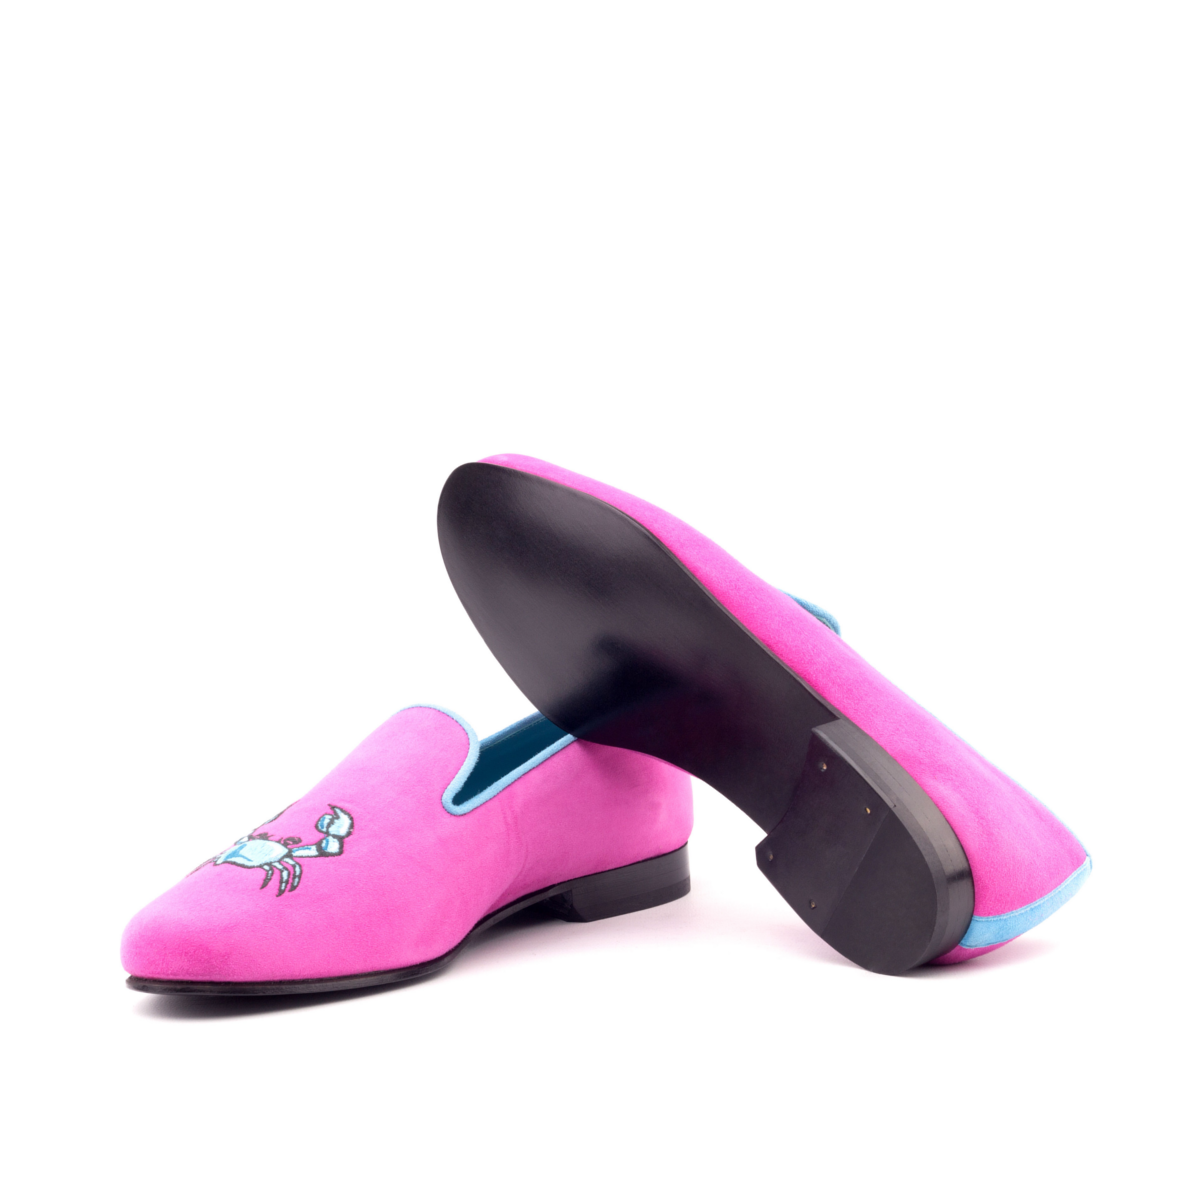 5890f40cc84c80 Fuschia suede Slipper - Cambrillón Bespoke Leather